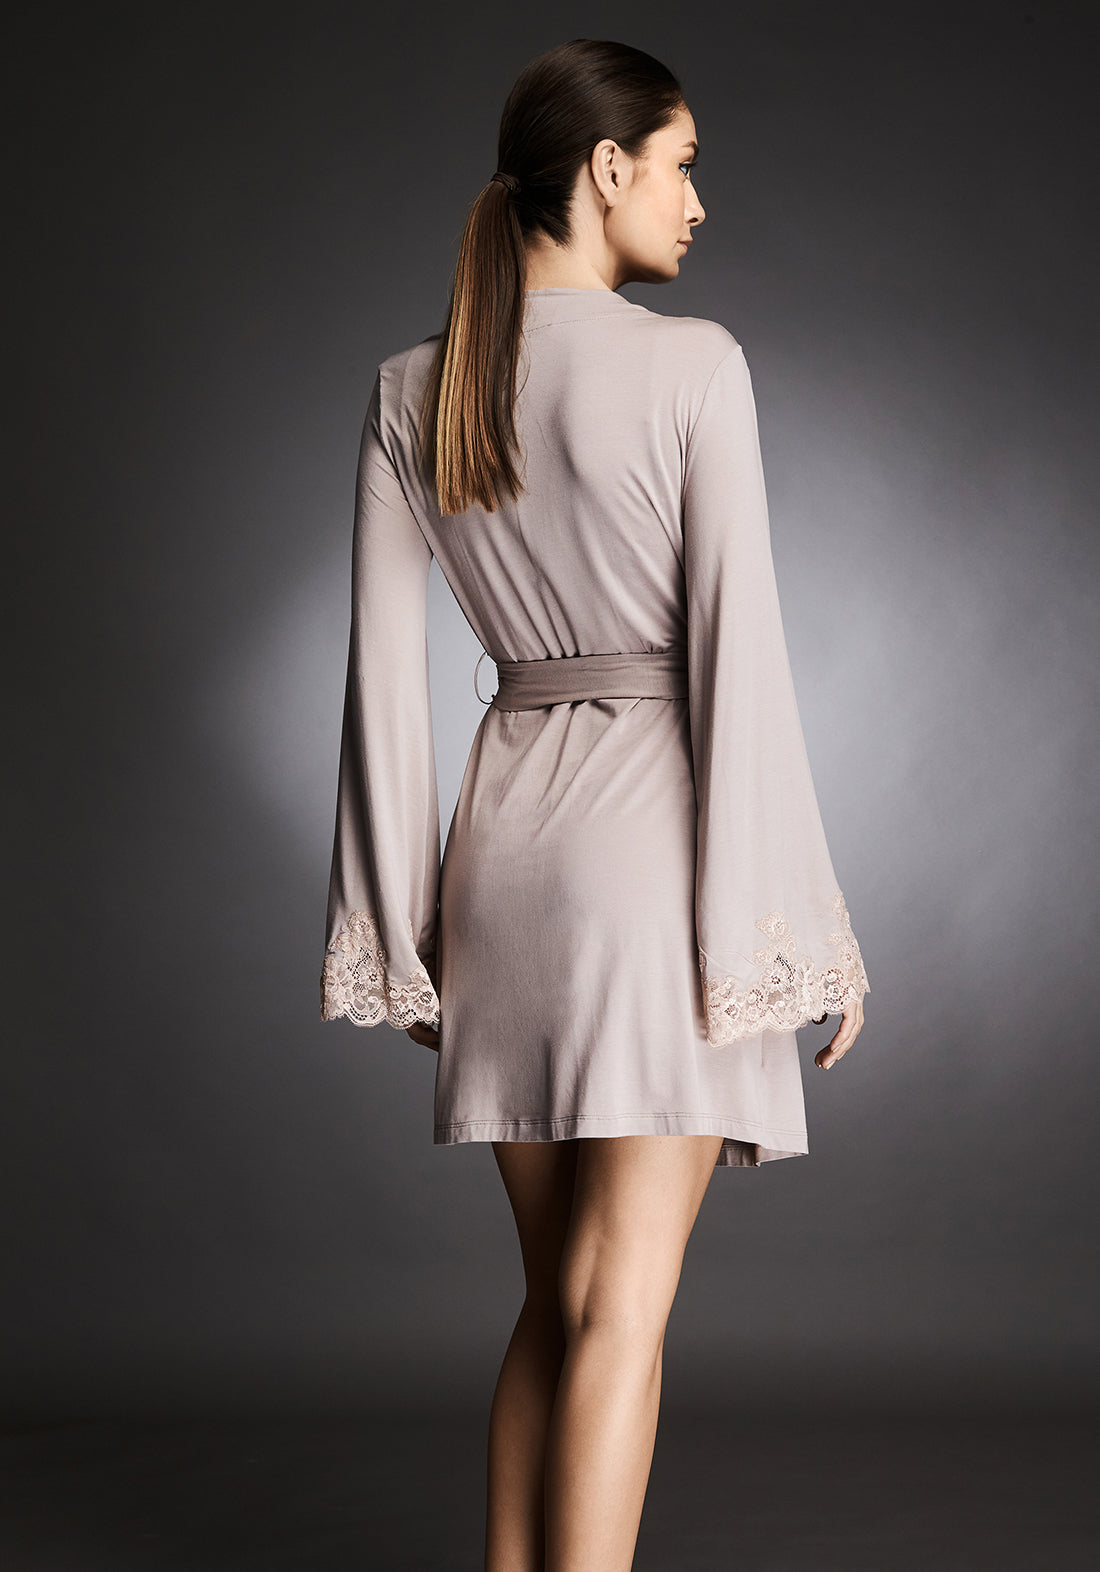 Isolde Mini Robe With Lace Insets in Almond Nude - I.D. Sarrieri